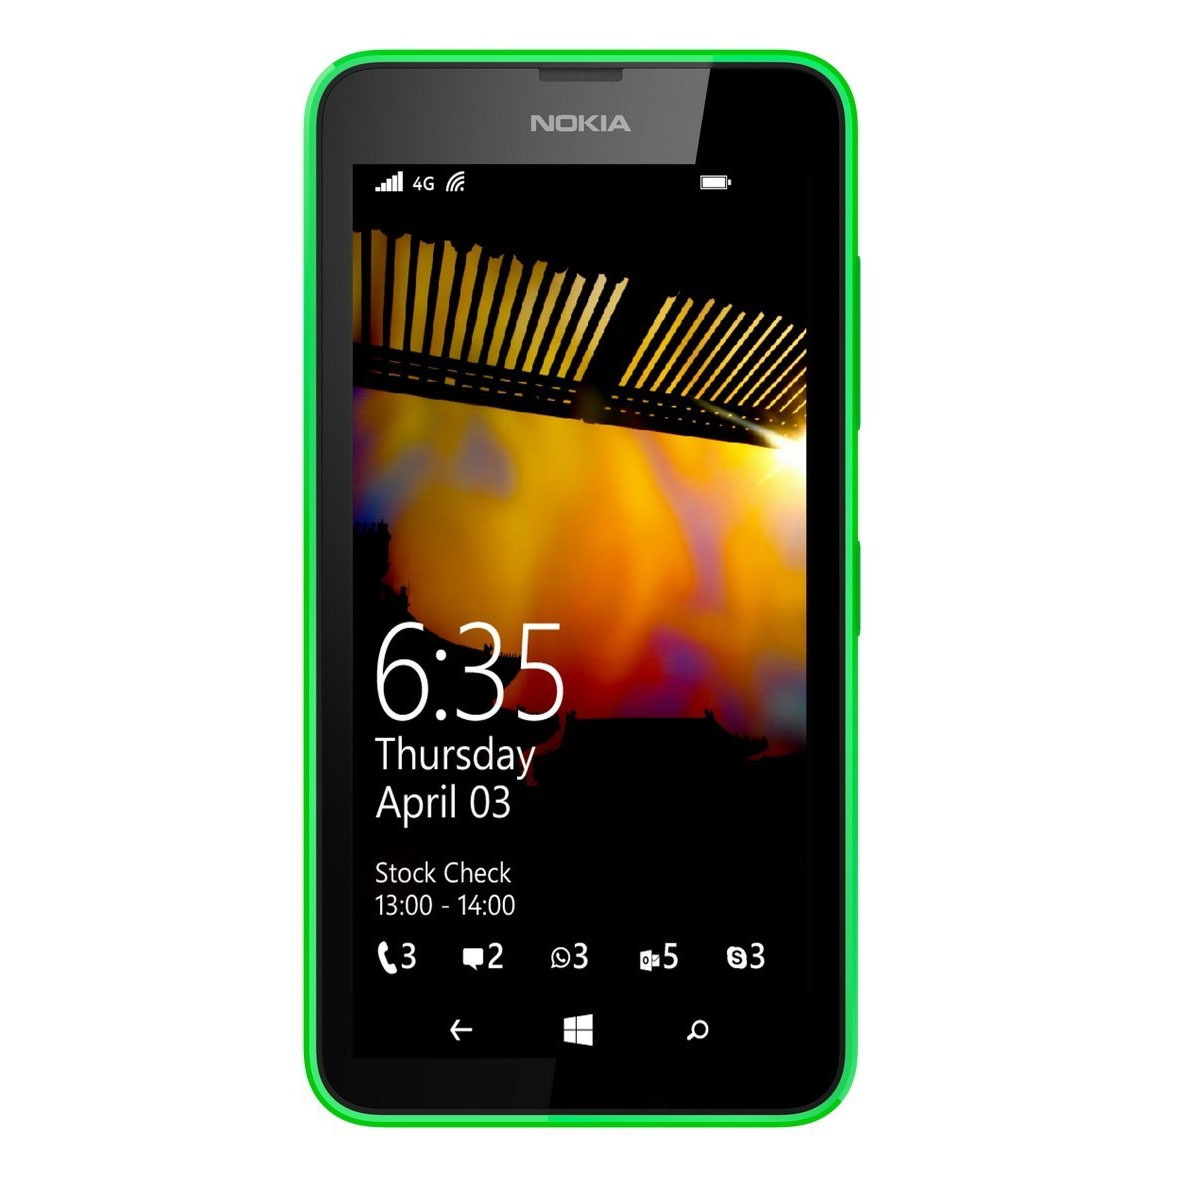 Nokia Lumia 635 Carrier Unlocked 4.5'' IPS Display 1GB RAM 8GB Internal 5MP Camera Phone - Green